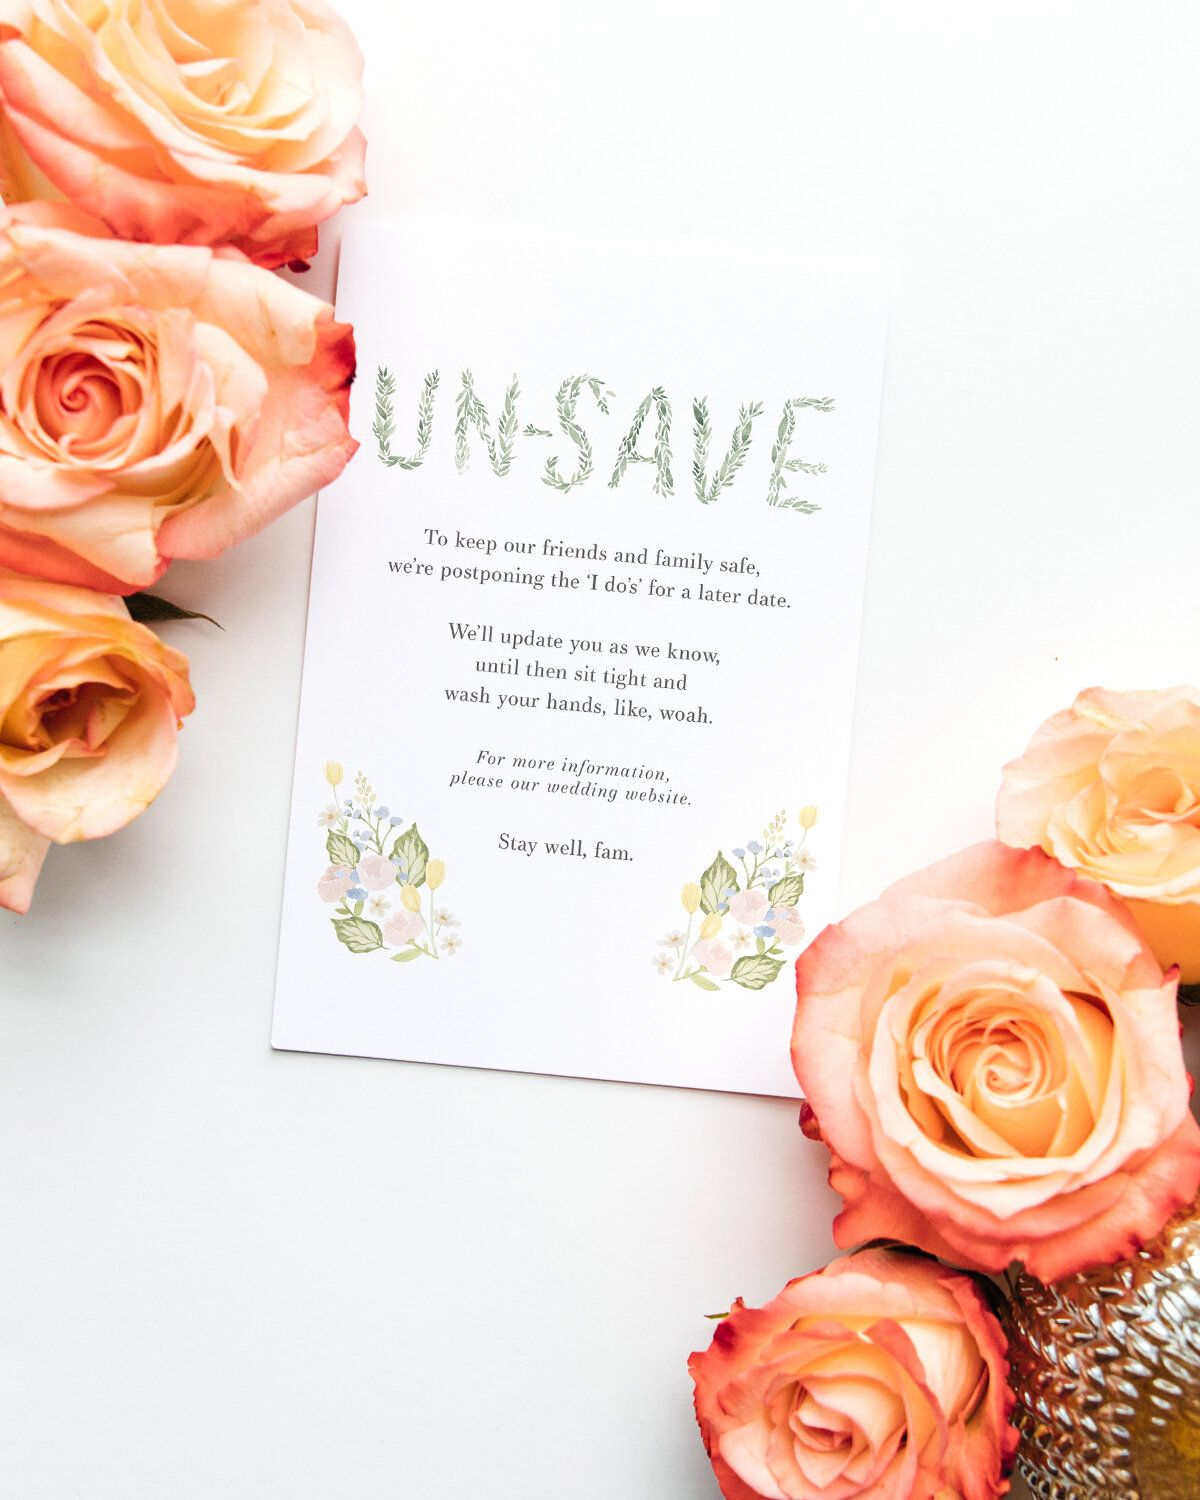 UnSave the Date Diy wedding stationery, Wedding website